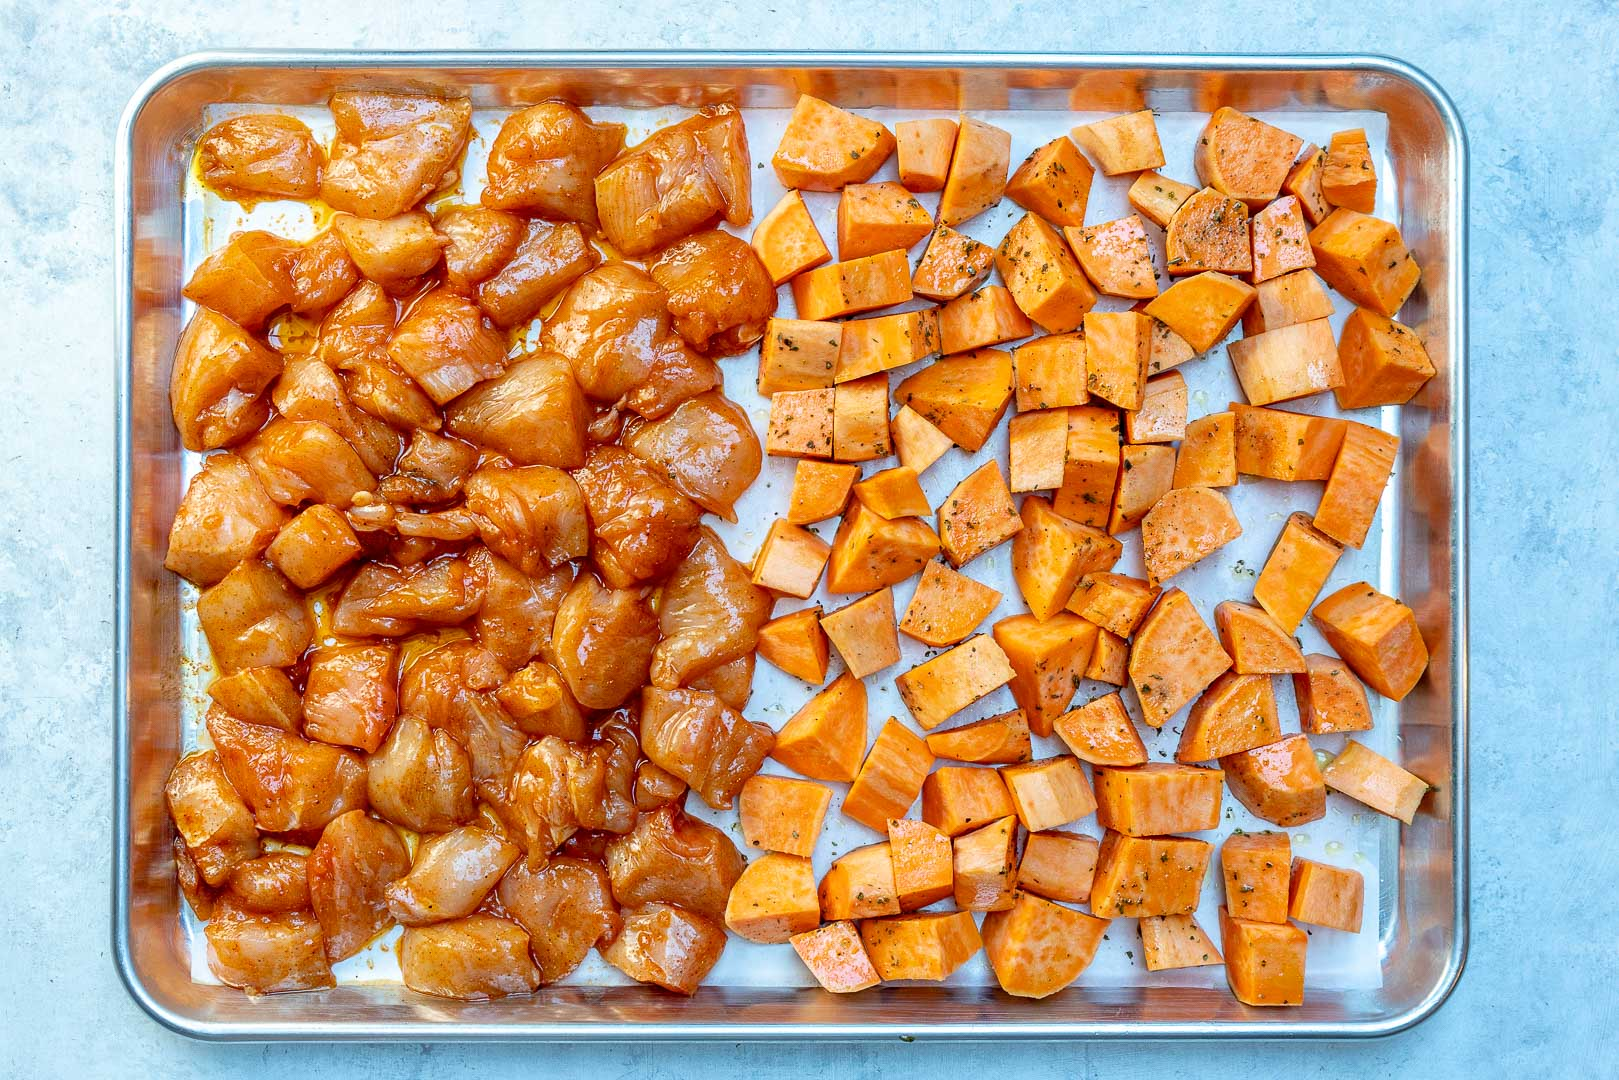 Roasted Chicken Sweet Potato Meal Prep Ingredients